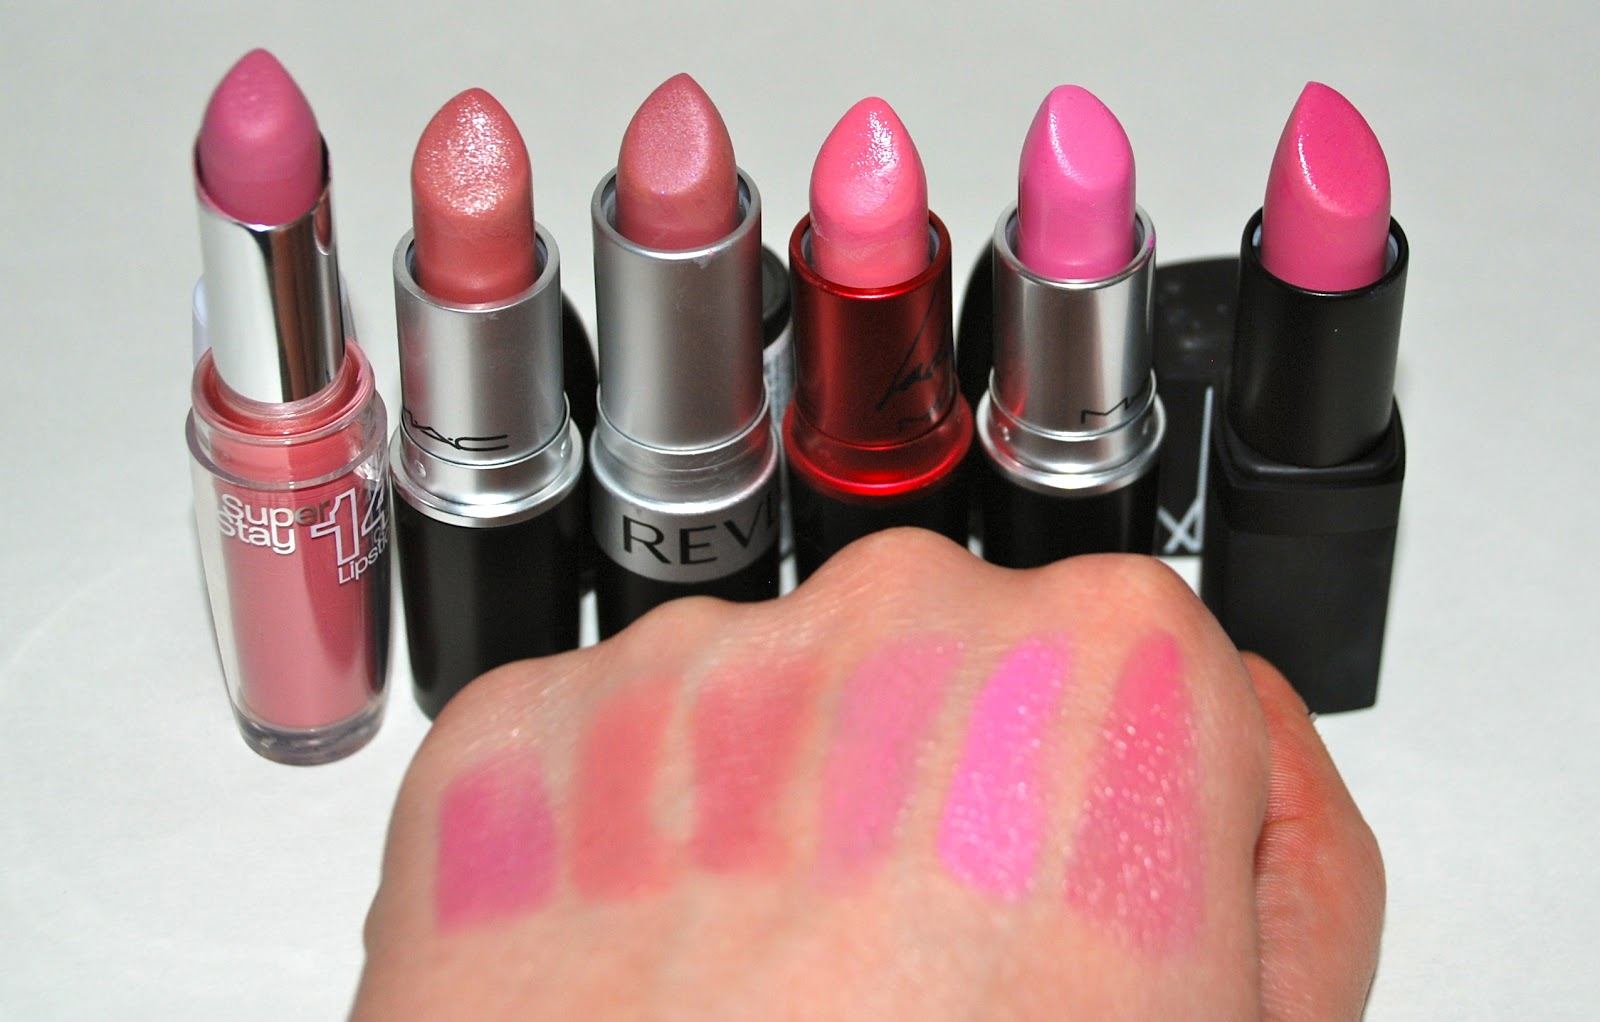 Makeup and beauty at your fingertips: Battle of the pink lipsticks